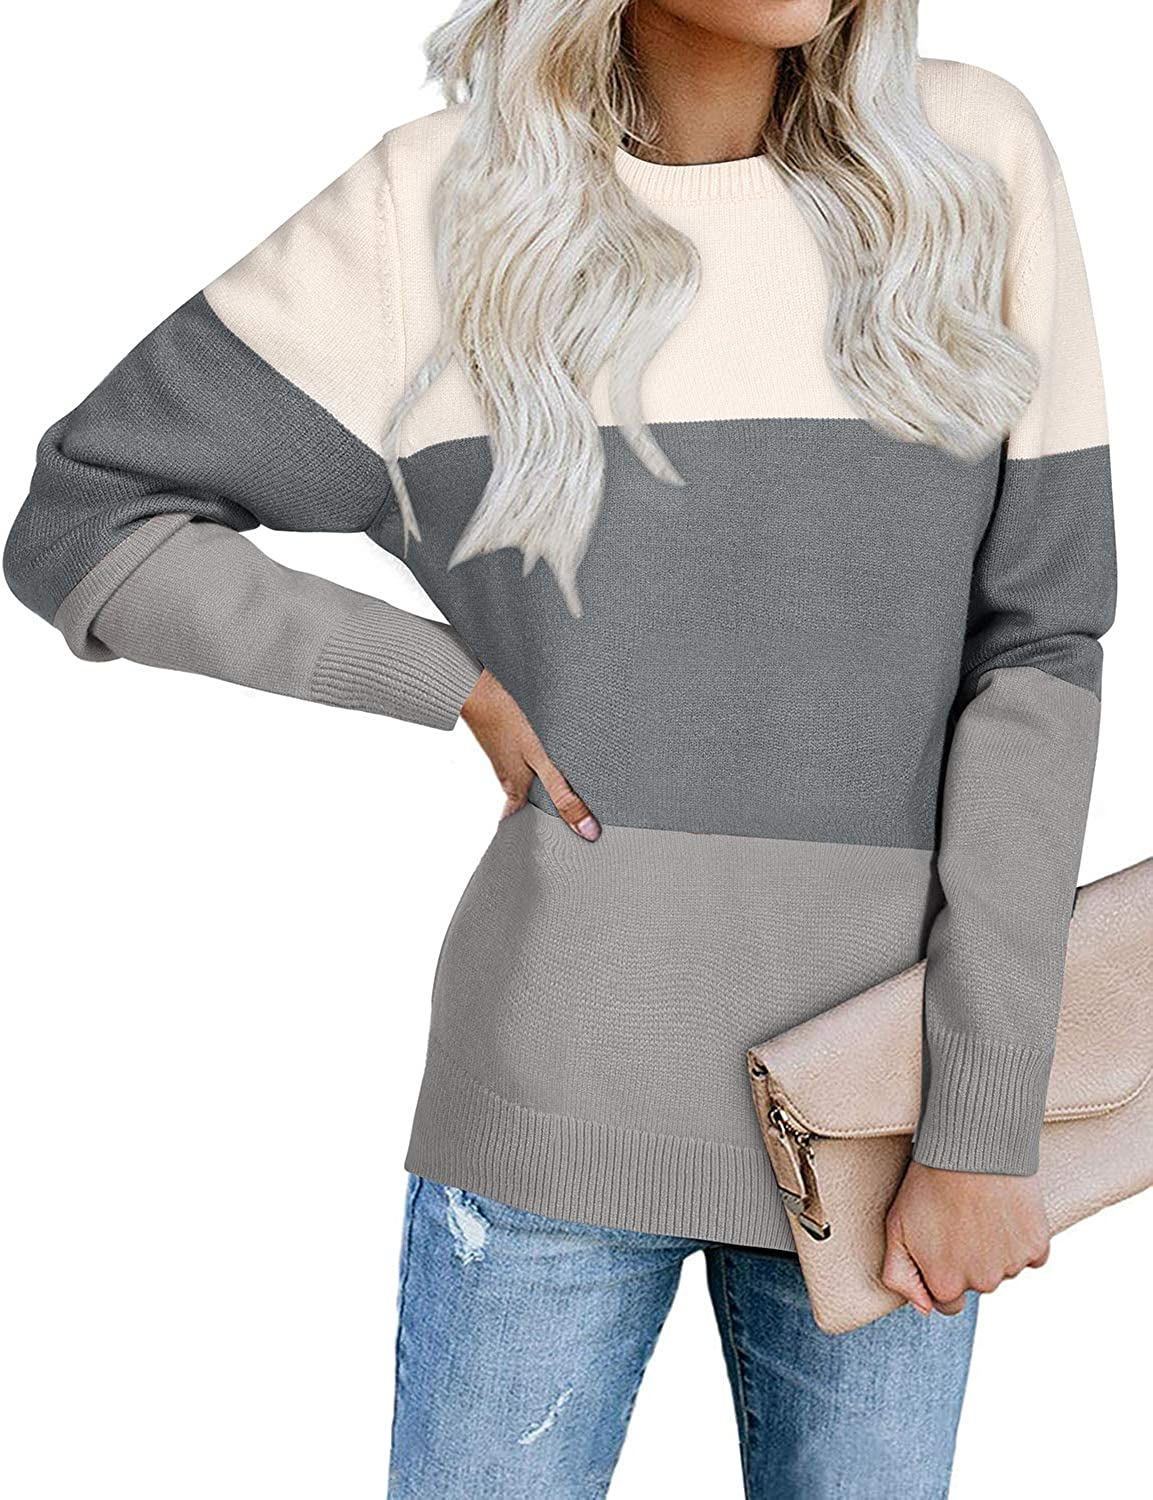 OUGES Womens Color Block Knit Sweater Long Sleeve V Neck Patchwork Casual Pullover